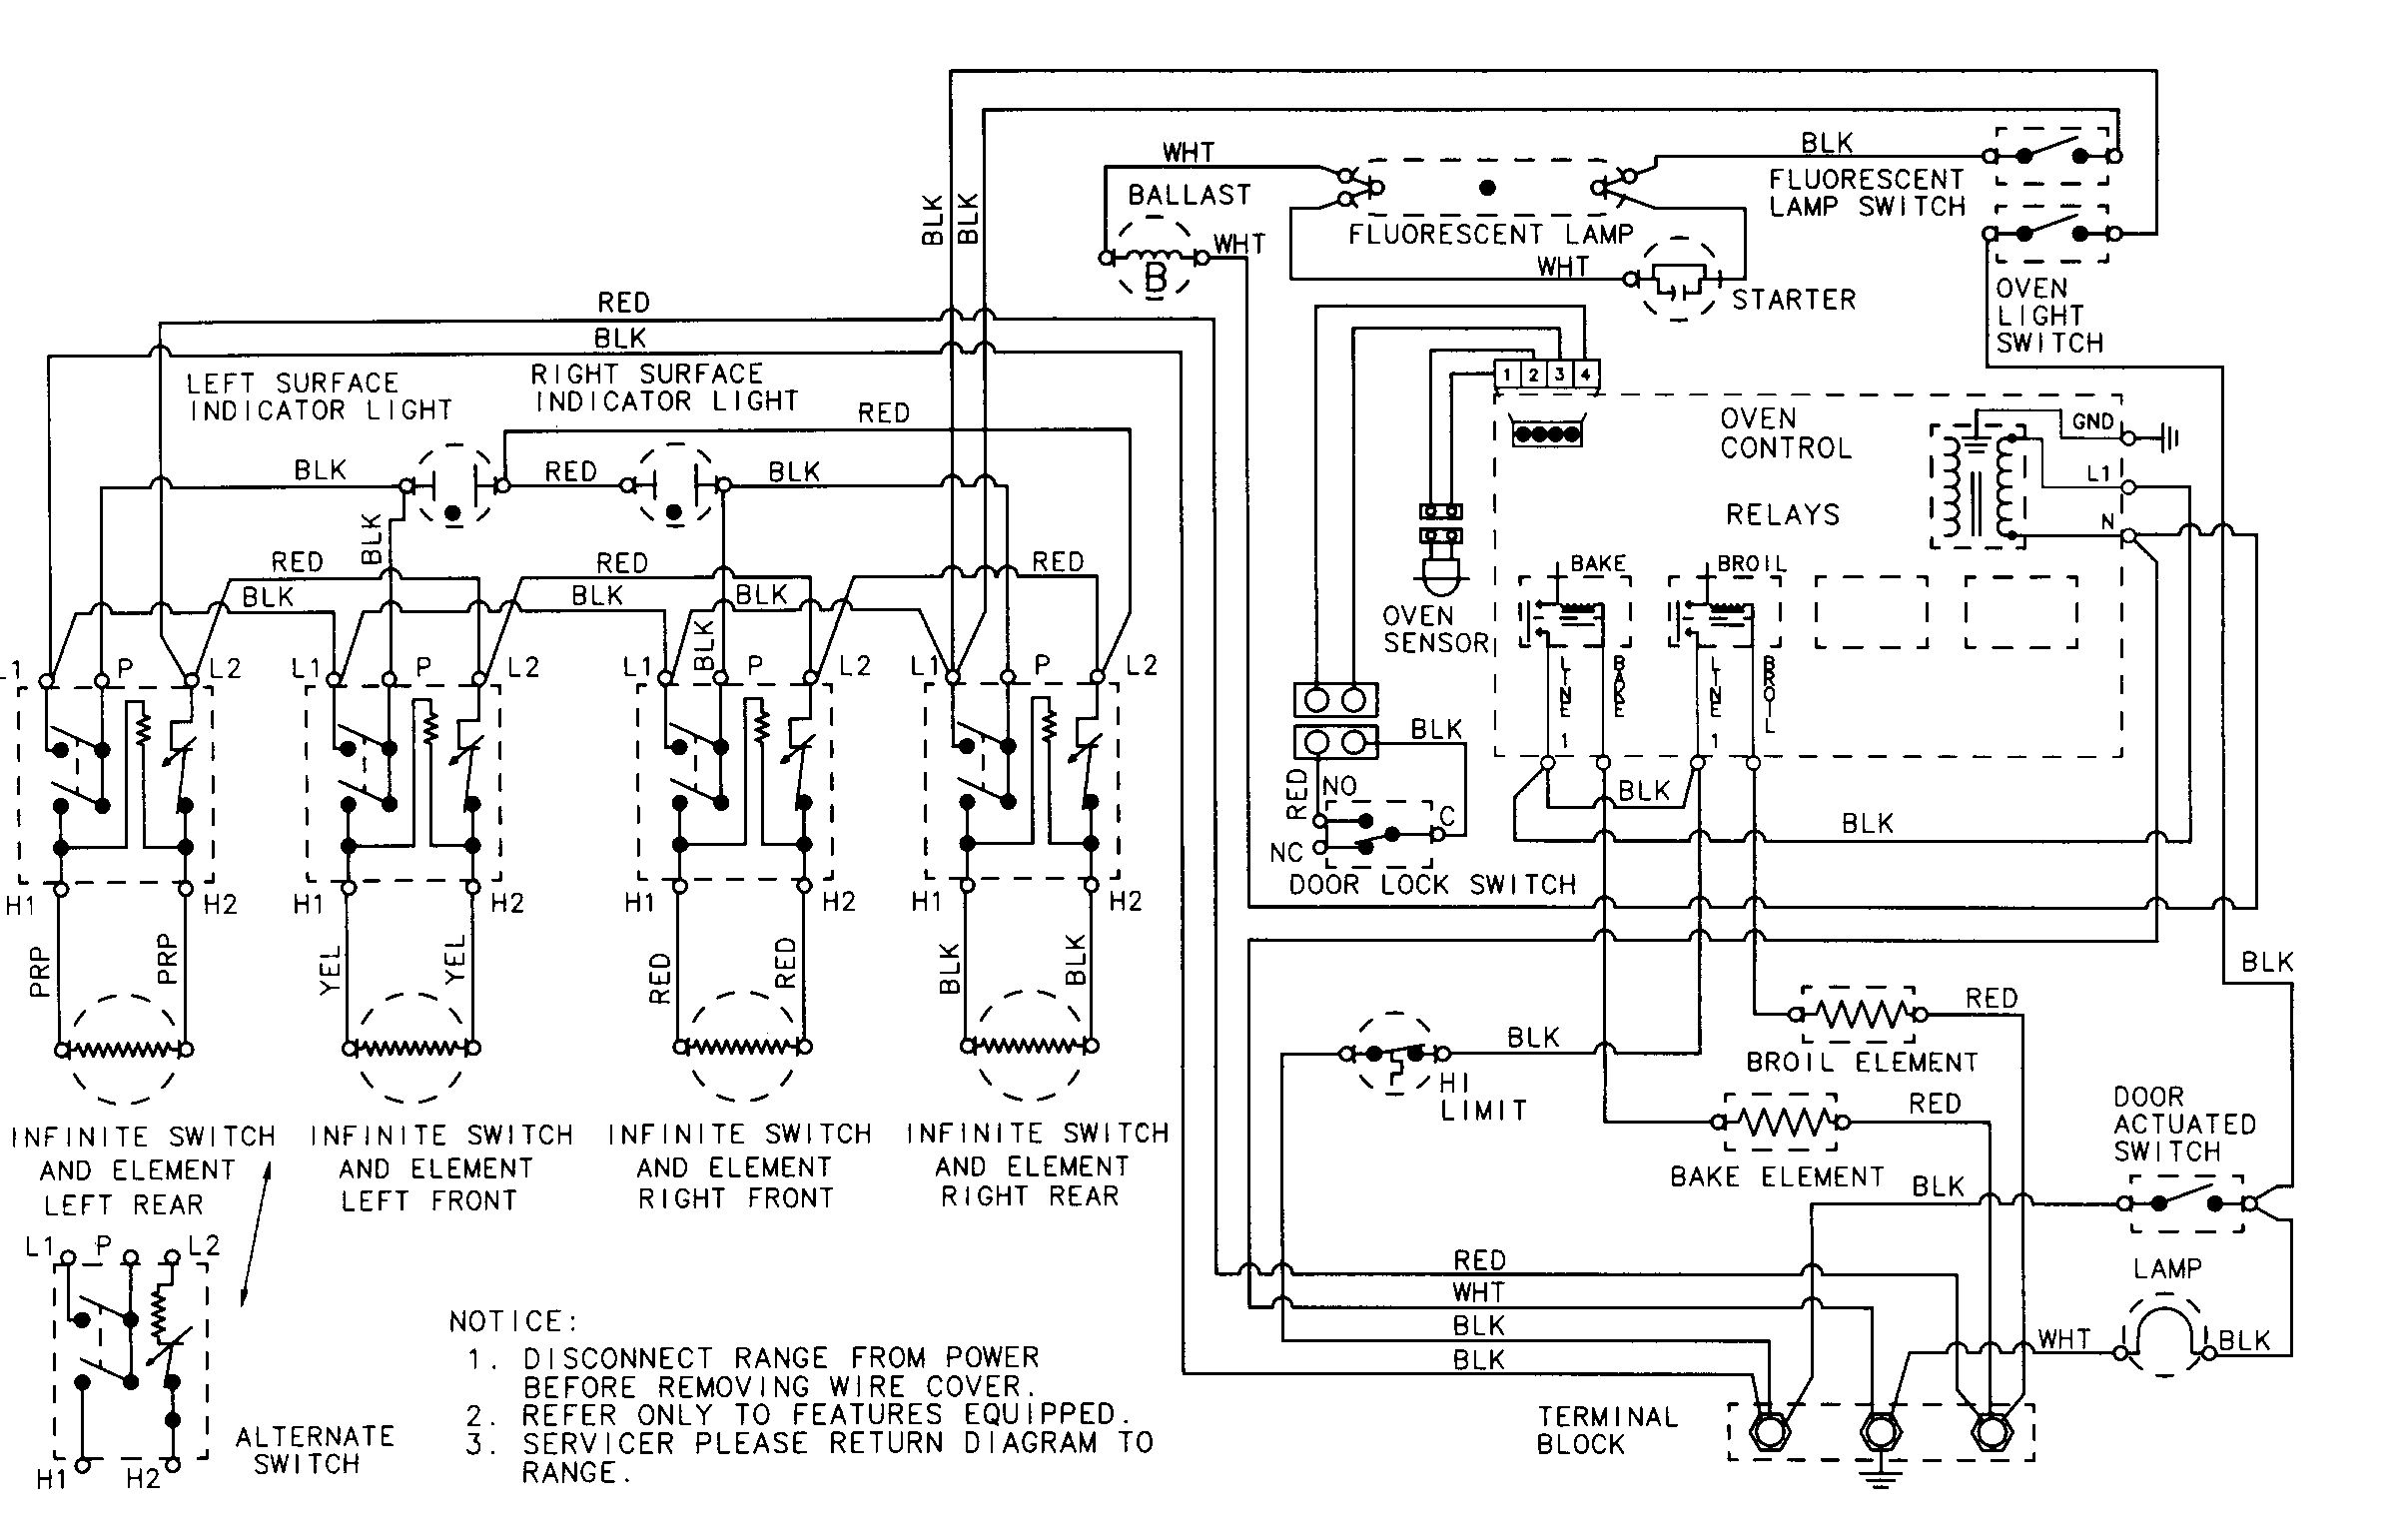 [DIAGRAM_5FD]  26D Ge Spectra Gas Stove Manual | Wiring Library | Wiring Diagram For Ge Cooktop |  | Wiring Library